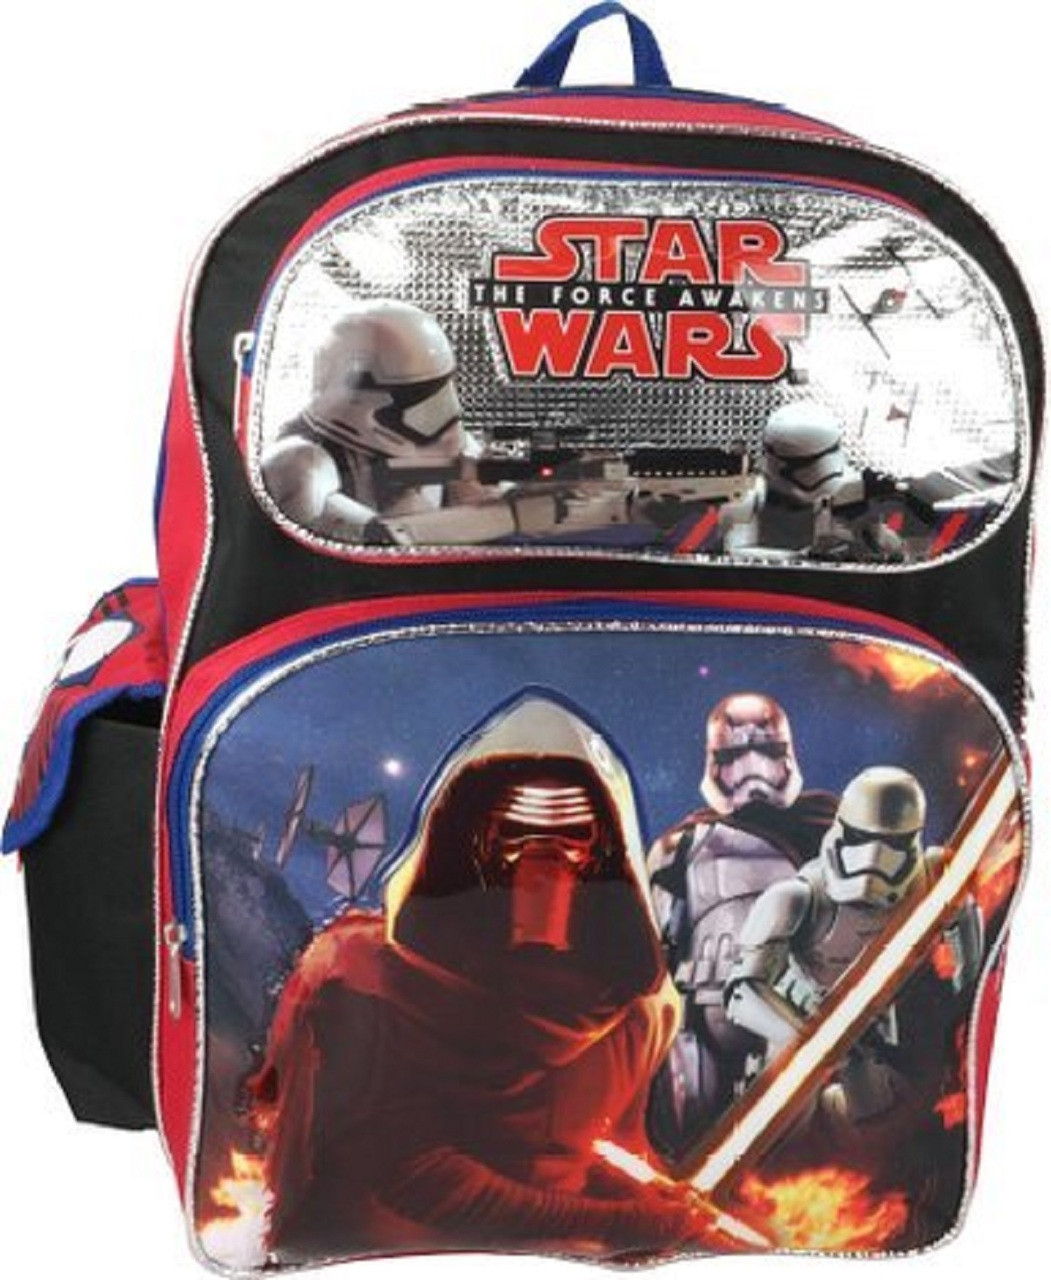 Star Wars - Backpack - Large 16 Inch - Boys - The Force Awakens